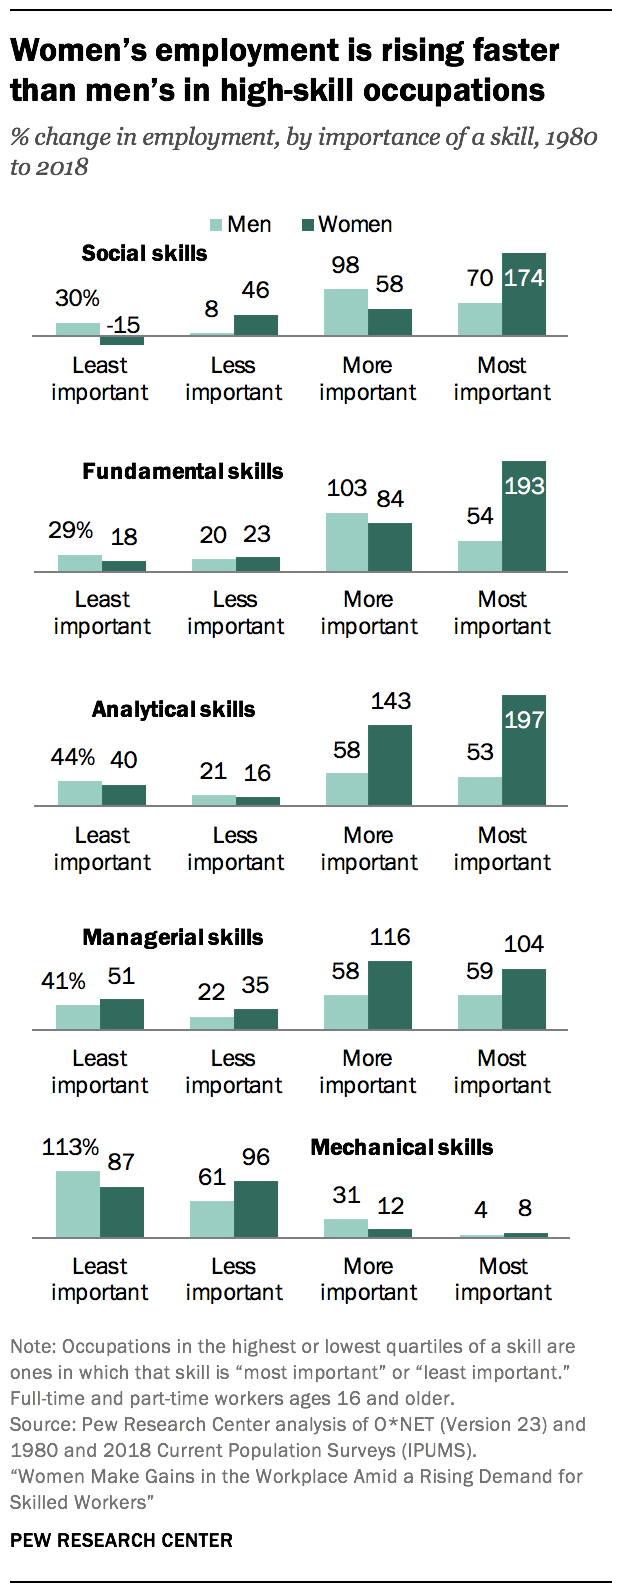 Women's employment is rising faster than men's in high-skill occupations